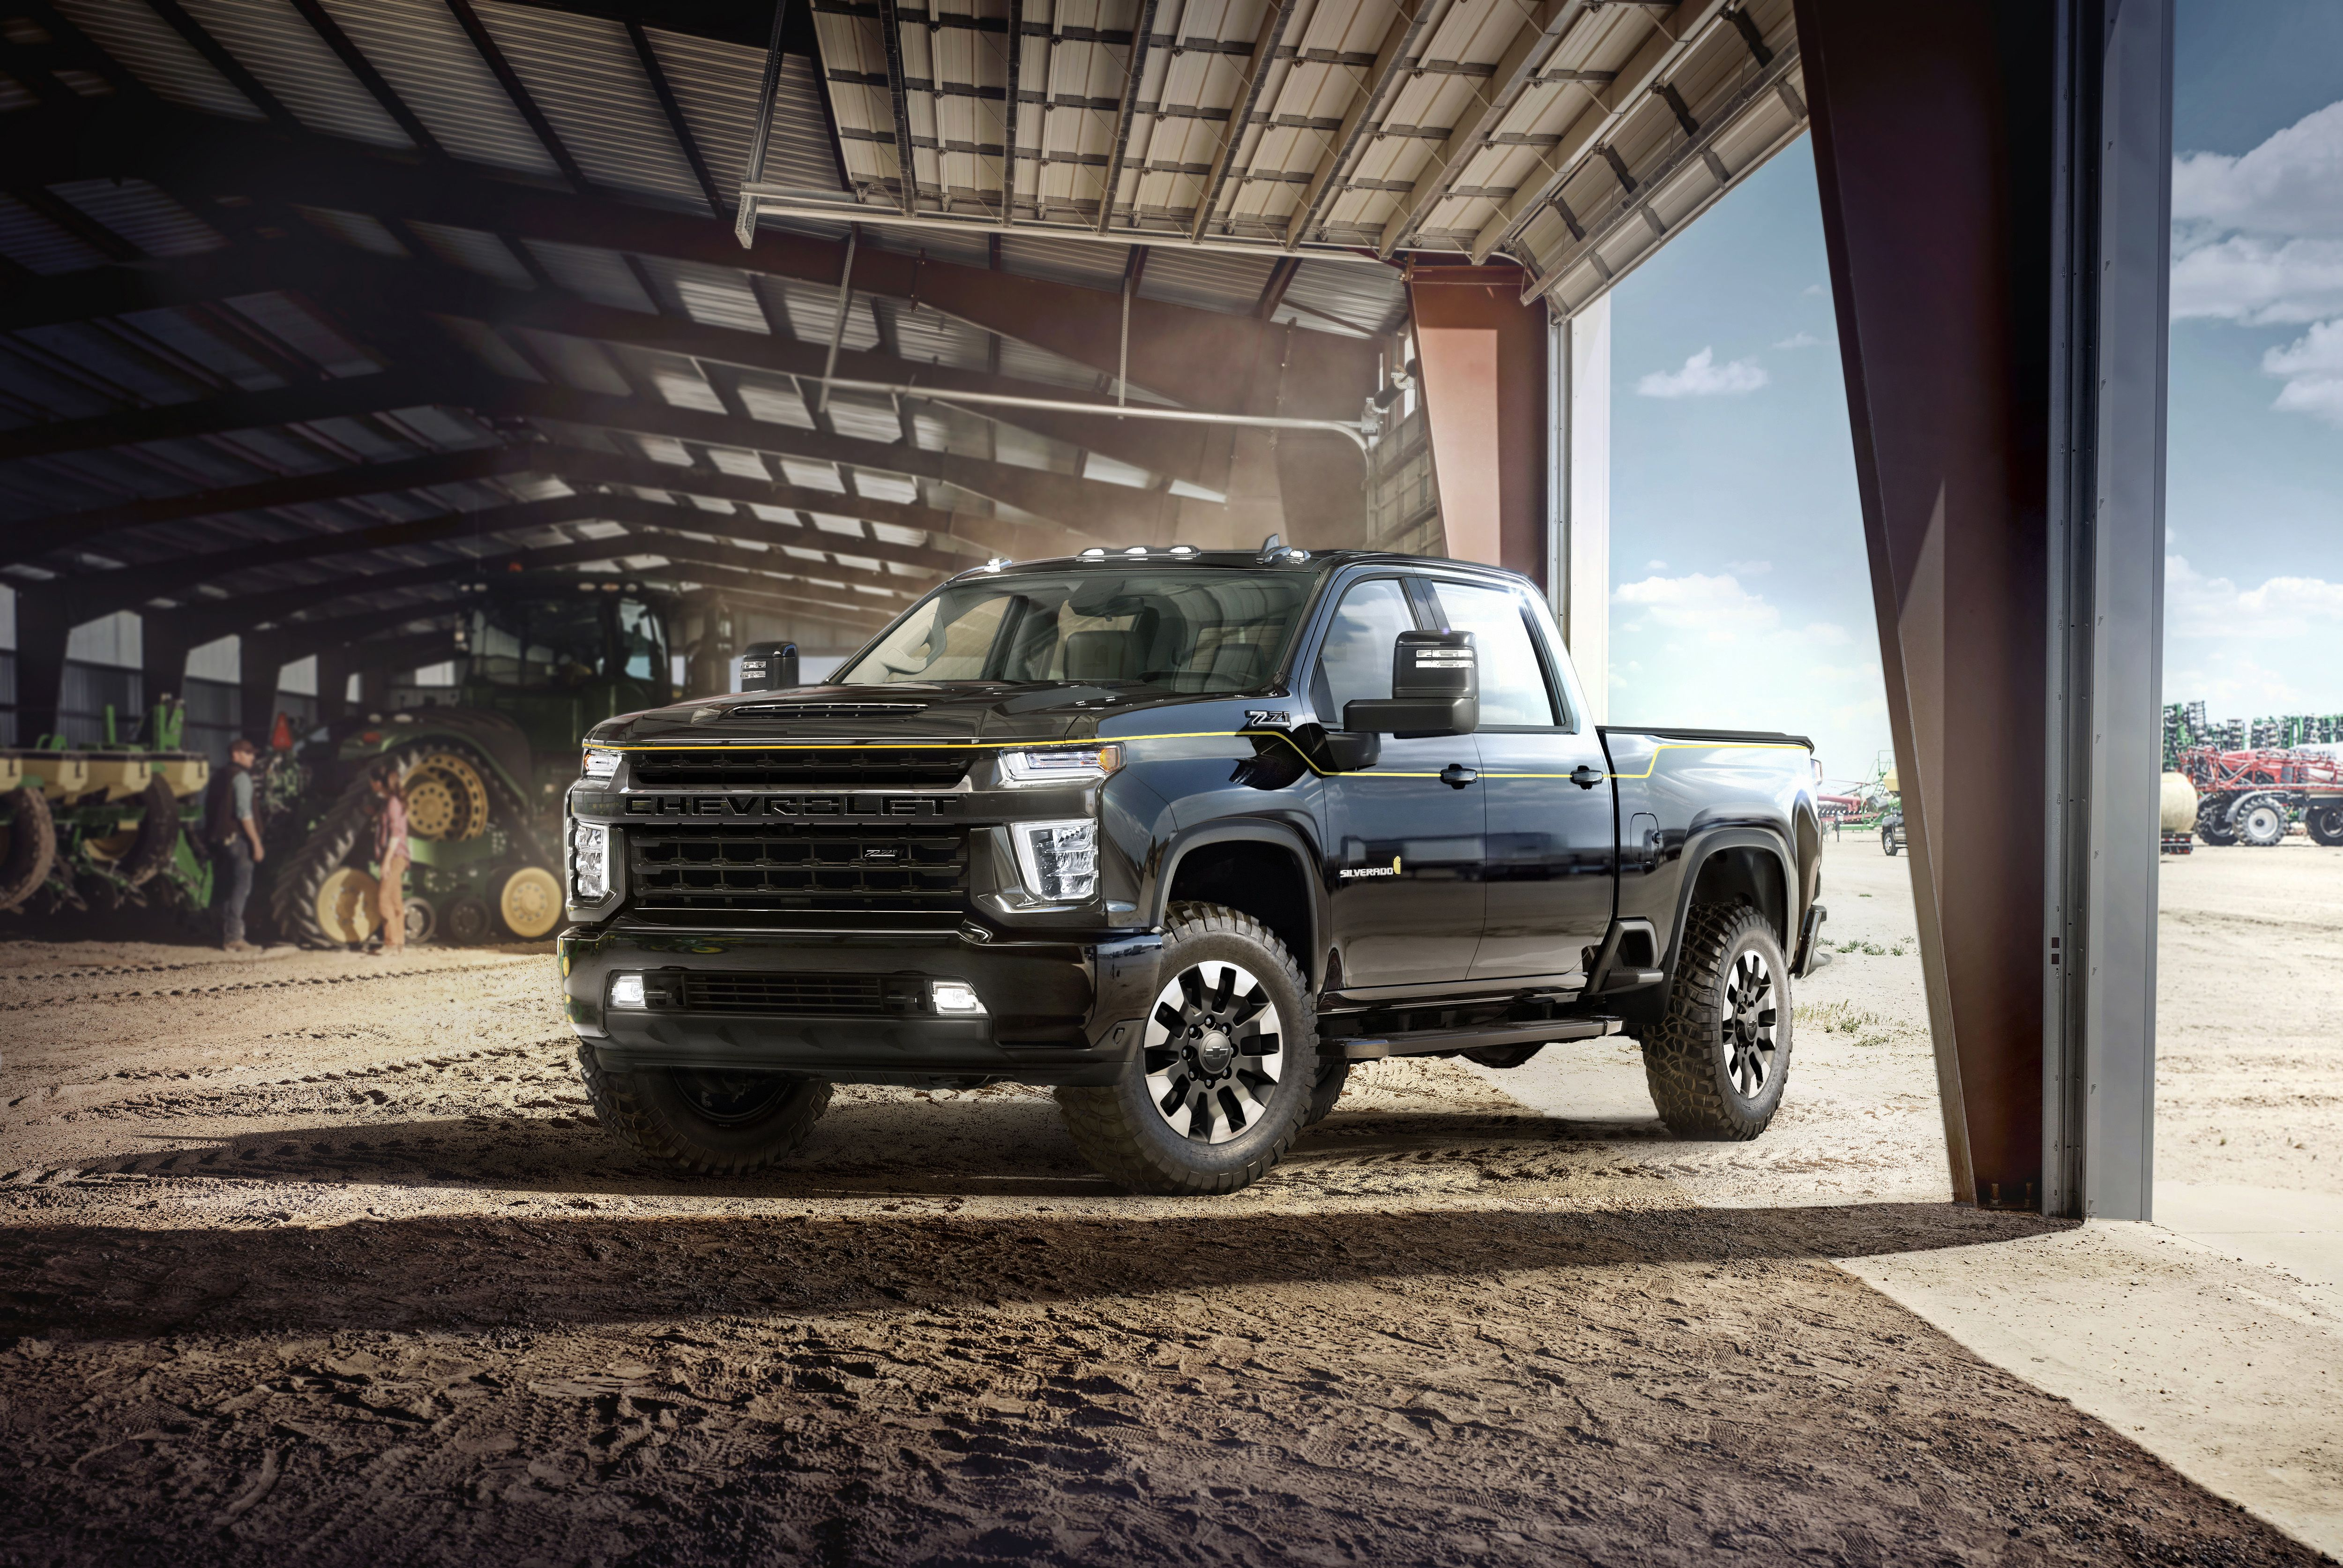 2021 Chevrolet Silverado Hd Review Pricing And Specs